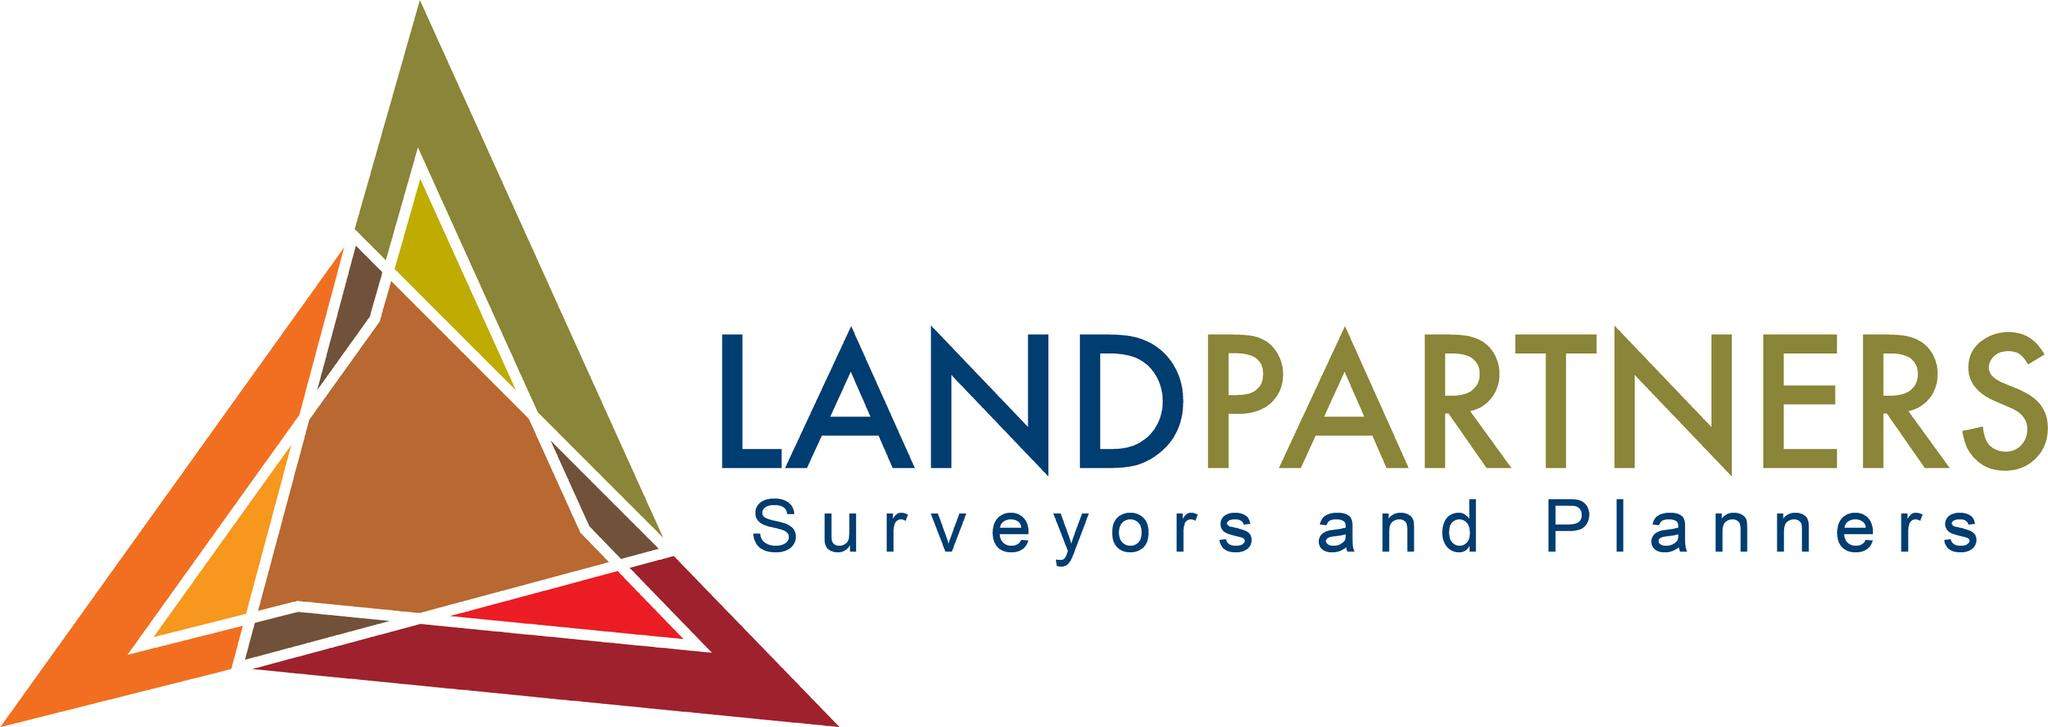 LandPartners